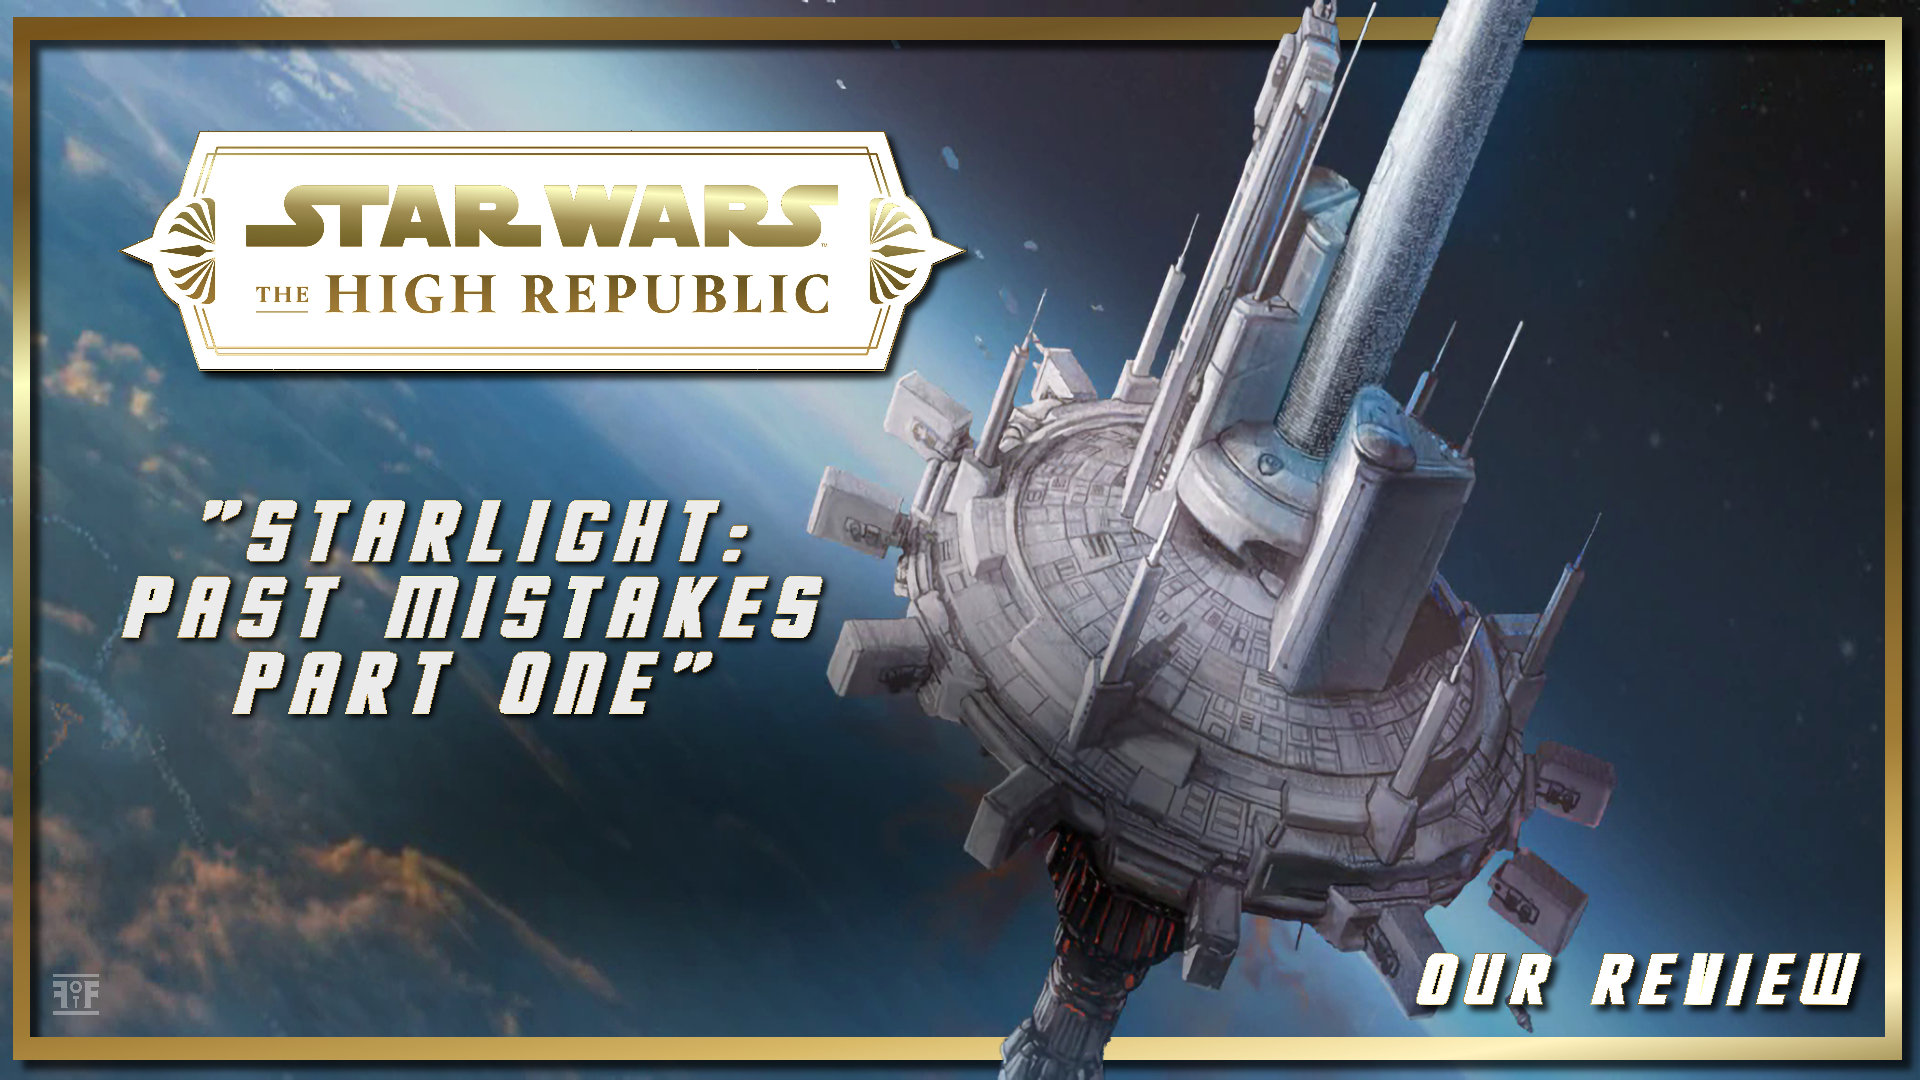 Review | Star Wars: The High Republic – Starlight: Past Mistakes Part 1